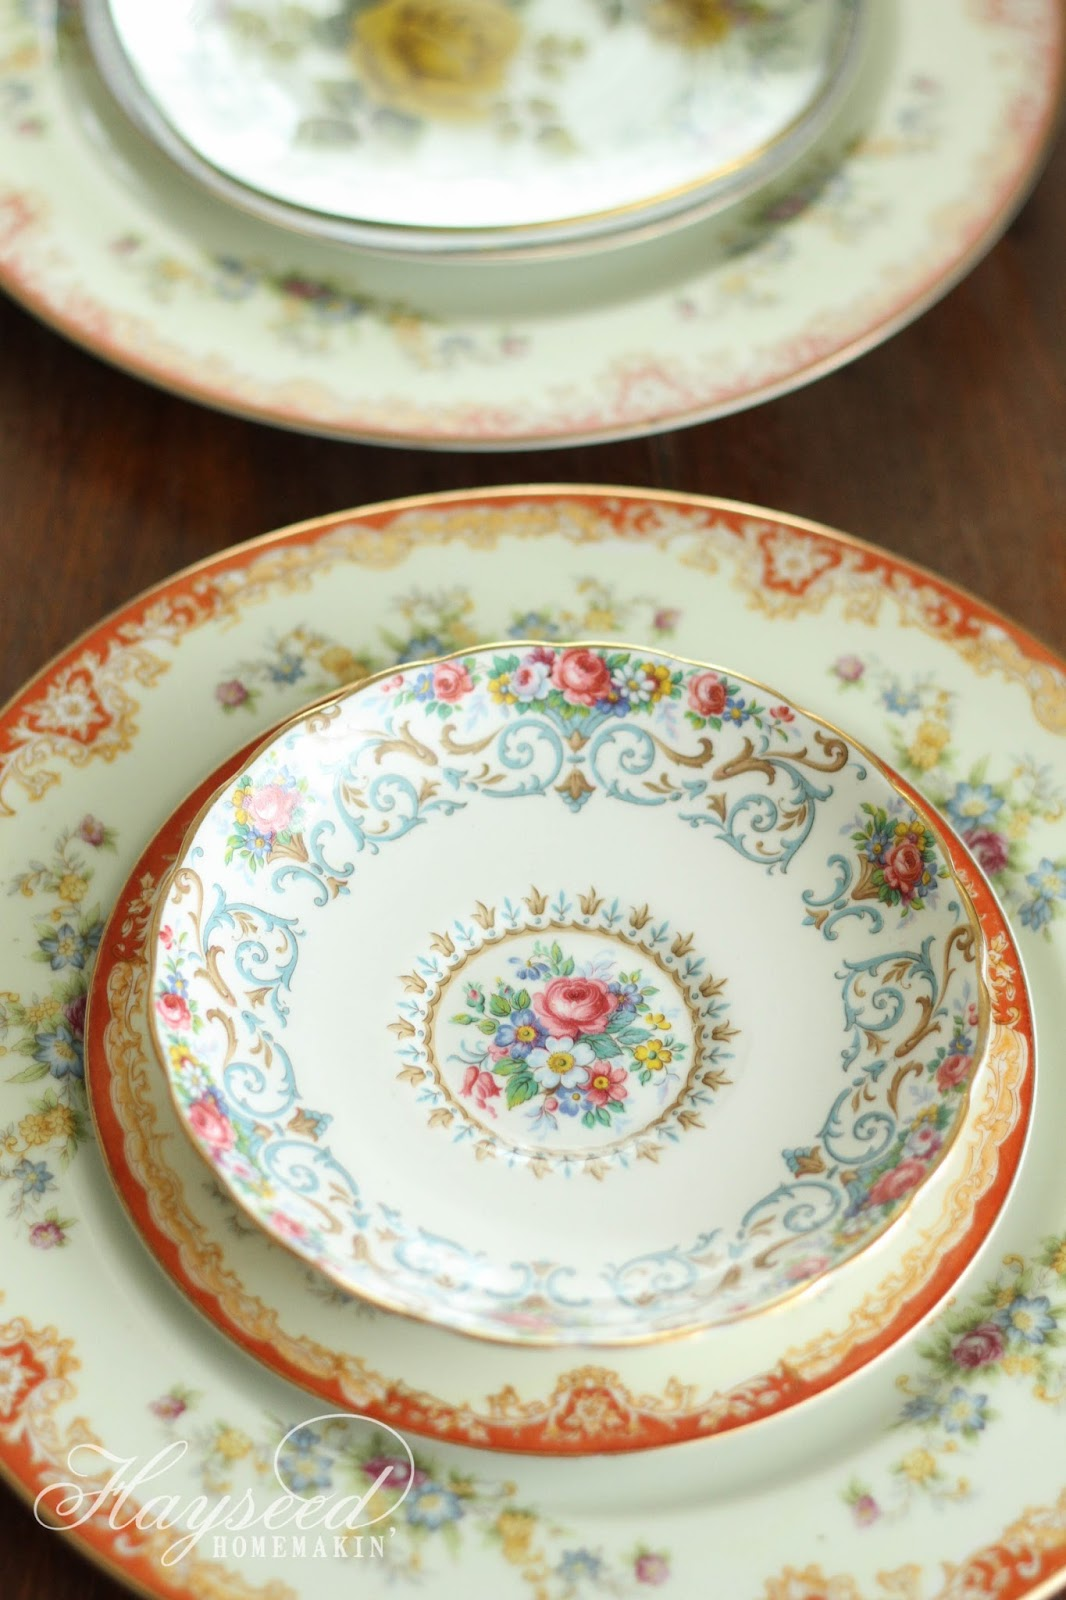 I love the look of mismatched china. You can create a beautiful place setting effortlessly by stacking plates \u0026 saucers of different patterns. & Hayseed Homemakin\u0027: Mismatched China : Plates \u0026 Saucers